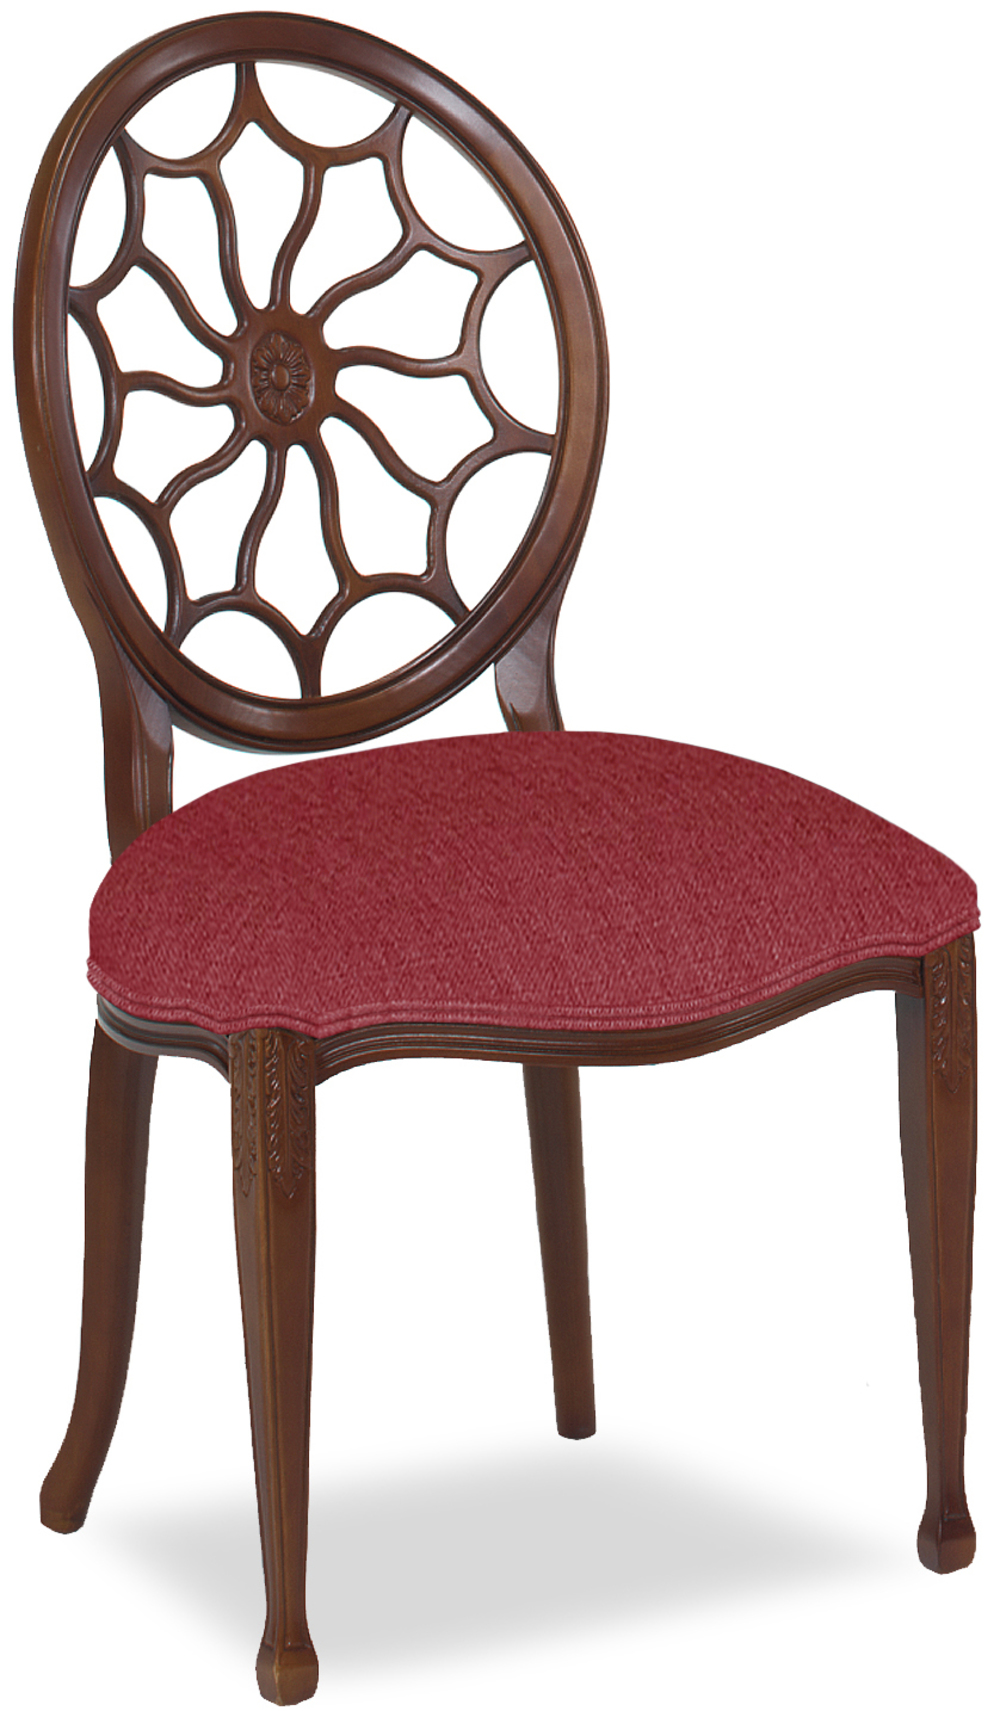 Parker Southern - Charlotte Armless Chair